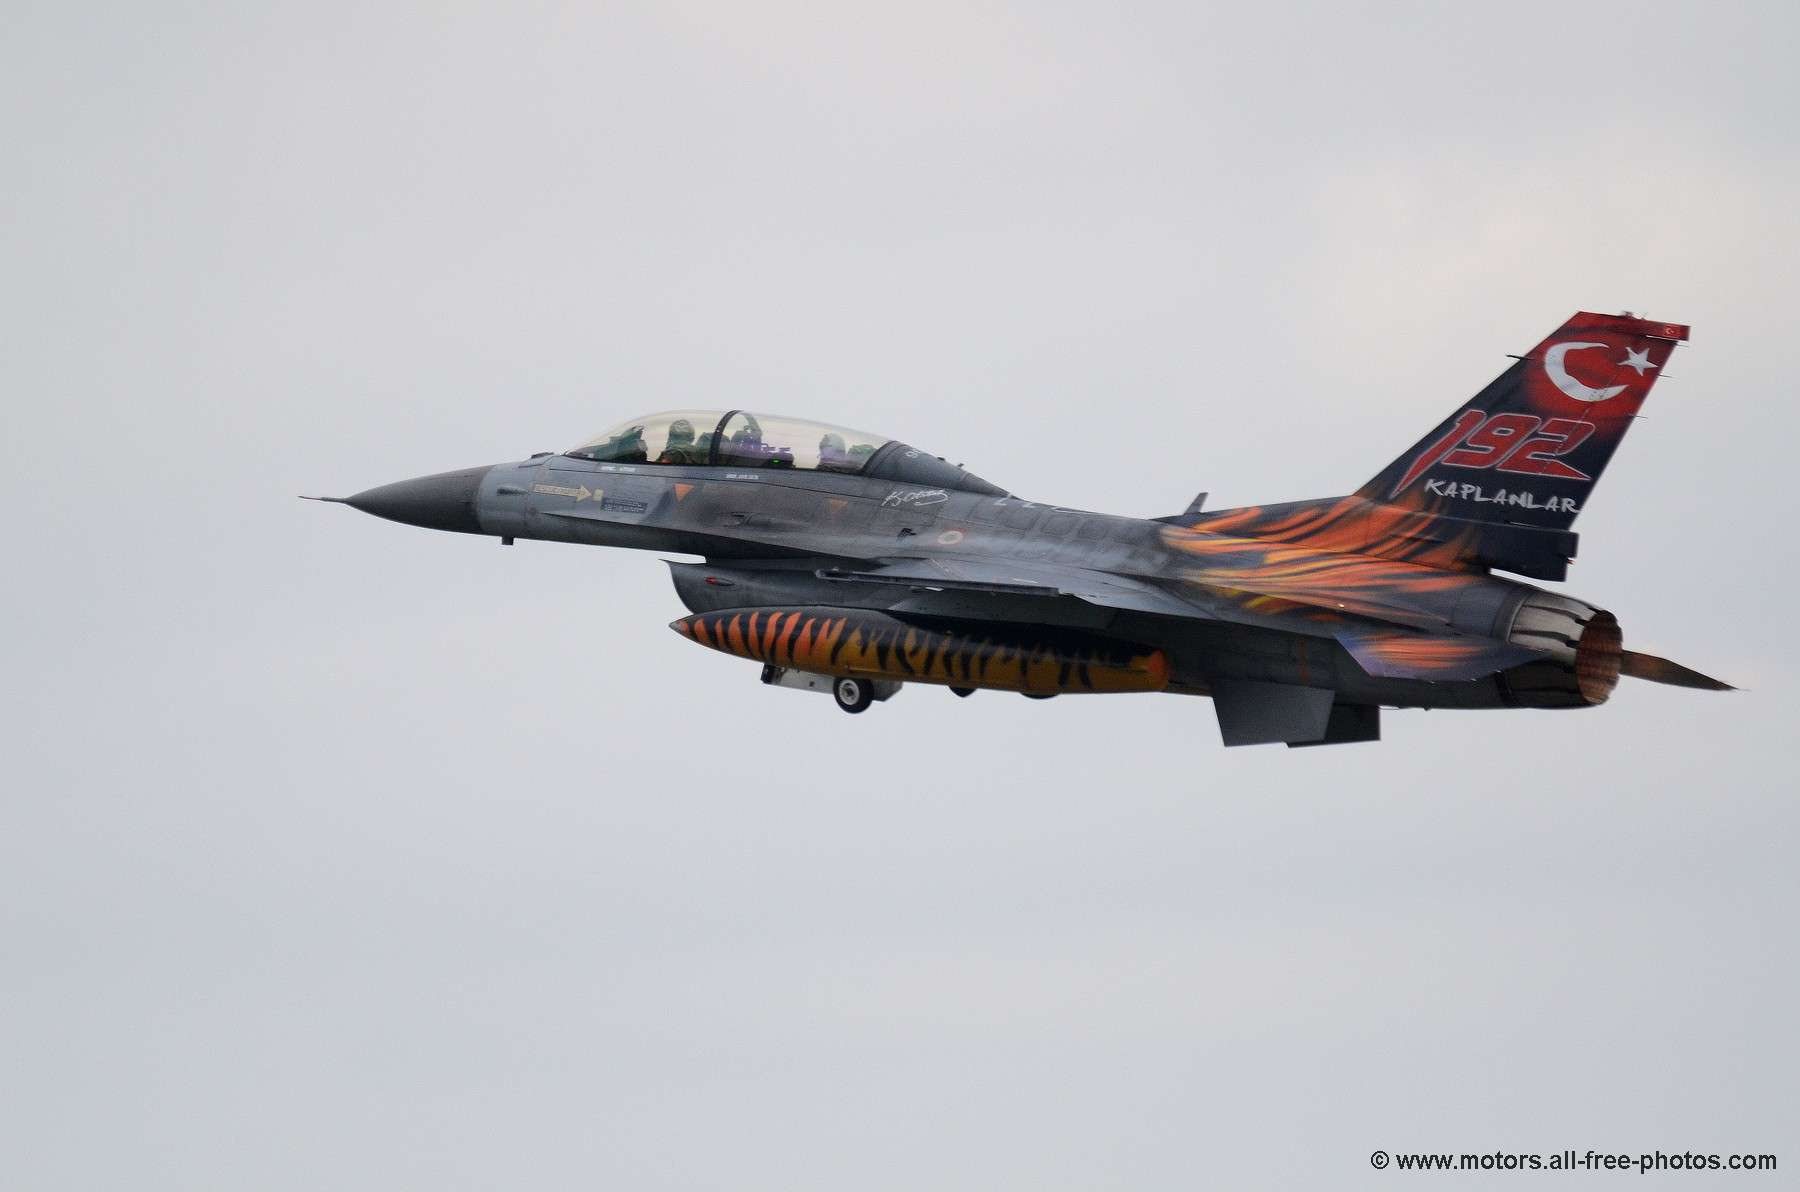 Home Galleries Aeronautics Nato Tiger Meet 2011 TUSAS F 16D Fighting